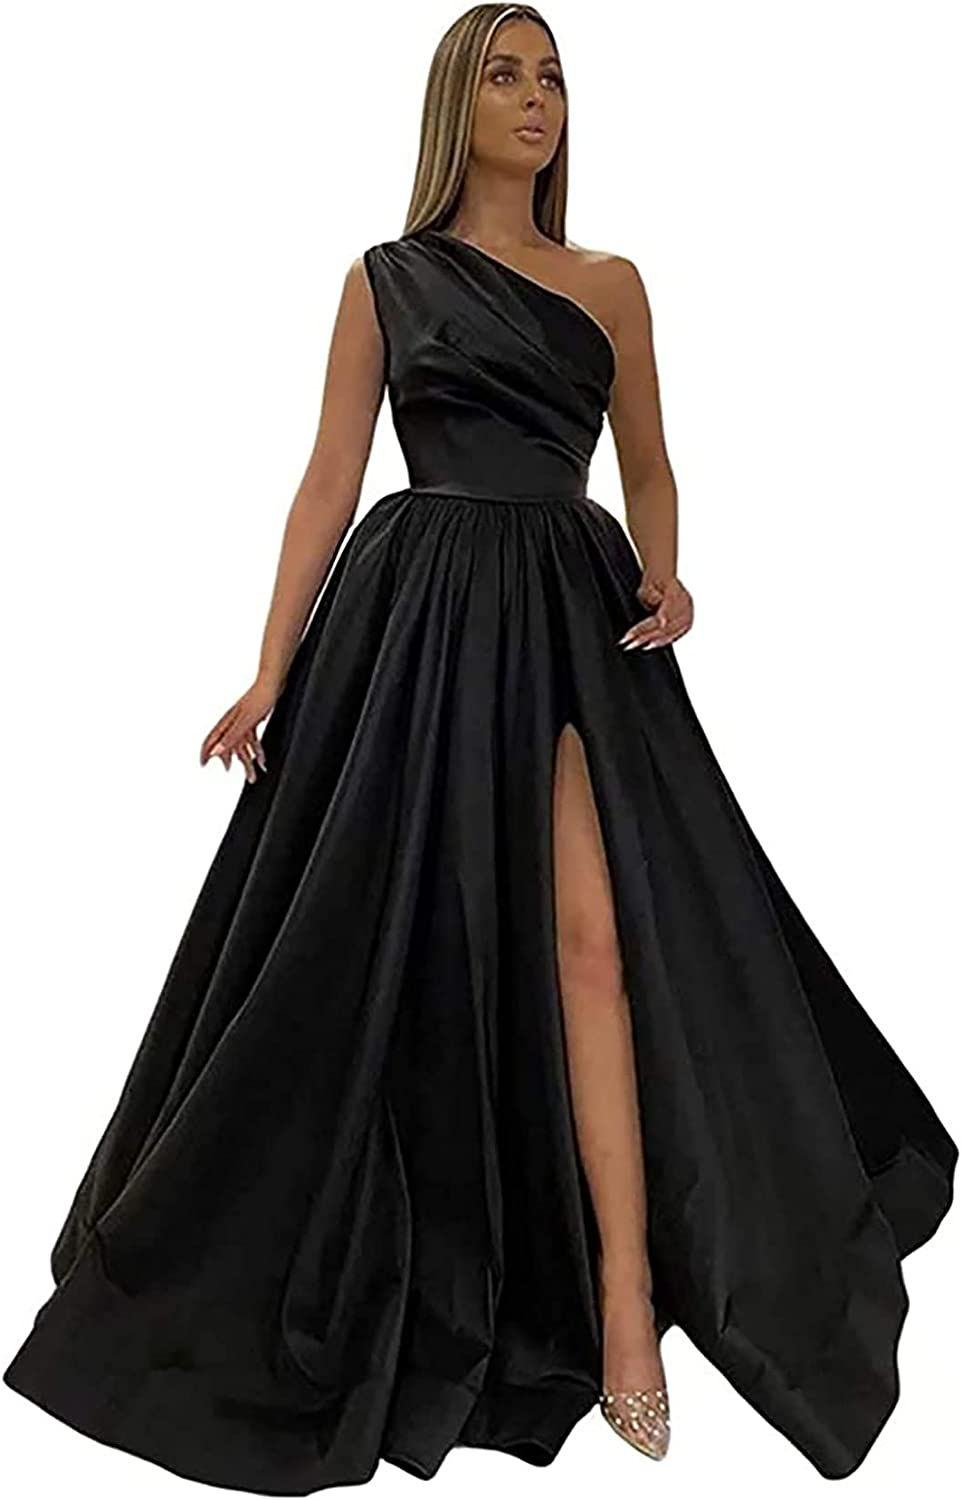 Women's One Shoulder Prom Dresses Formal Evening Party Dress Long Satin Split Ball Gowns with Pockets